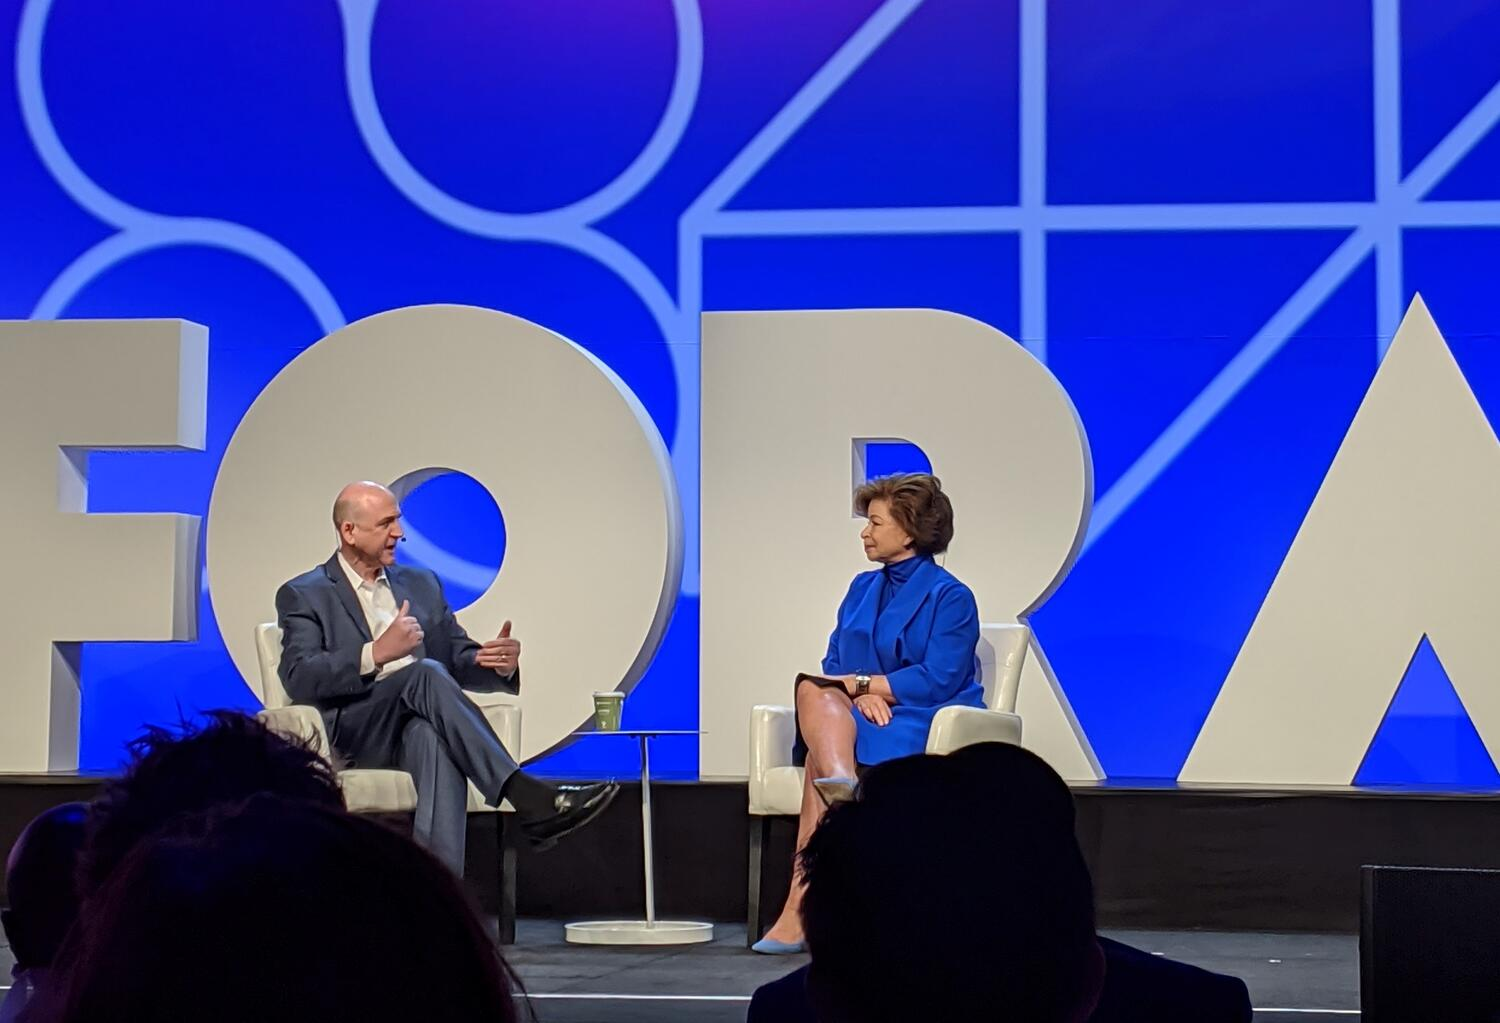 #GPTW4All Summit Recap: Top Insights From Day 2